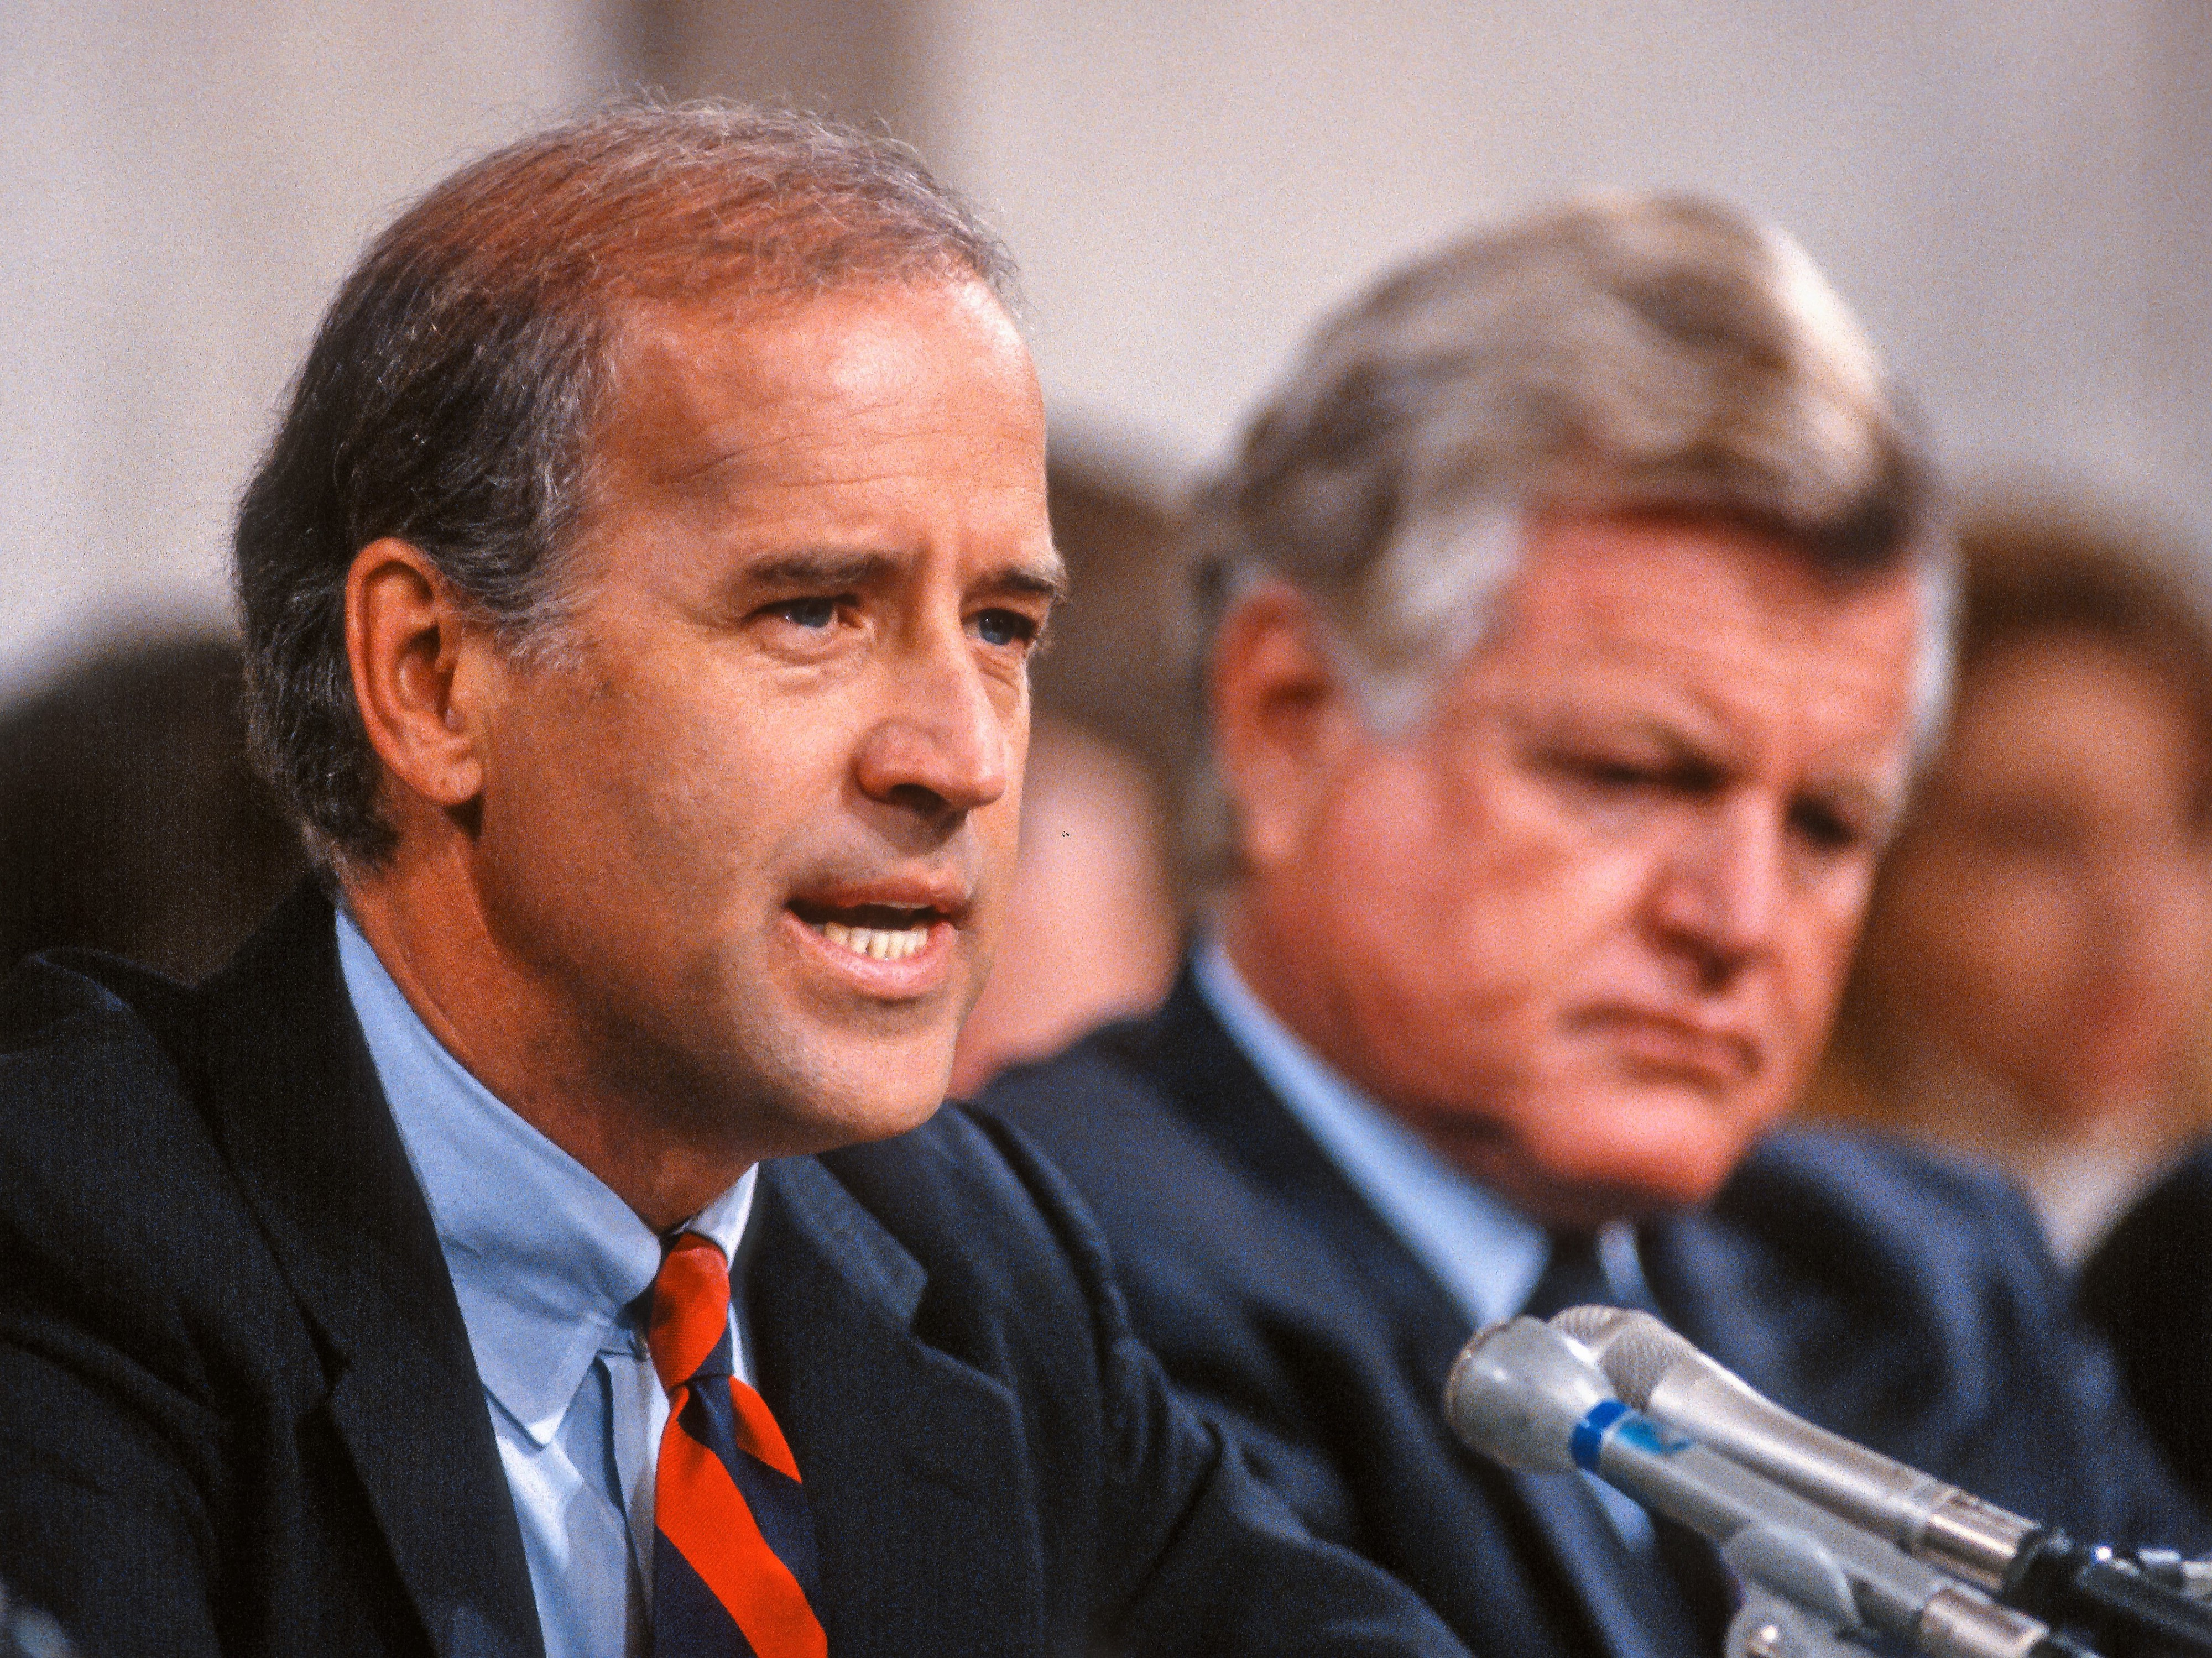 A younger Joe Biden during his time in the Senate in the 1990s